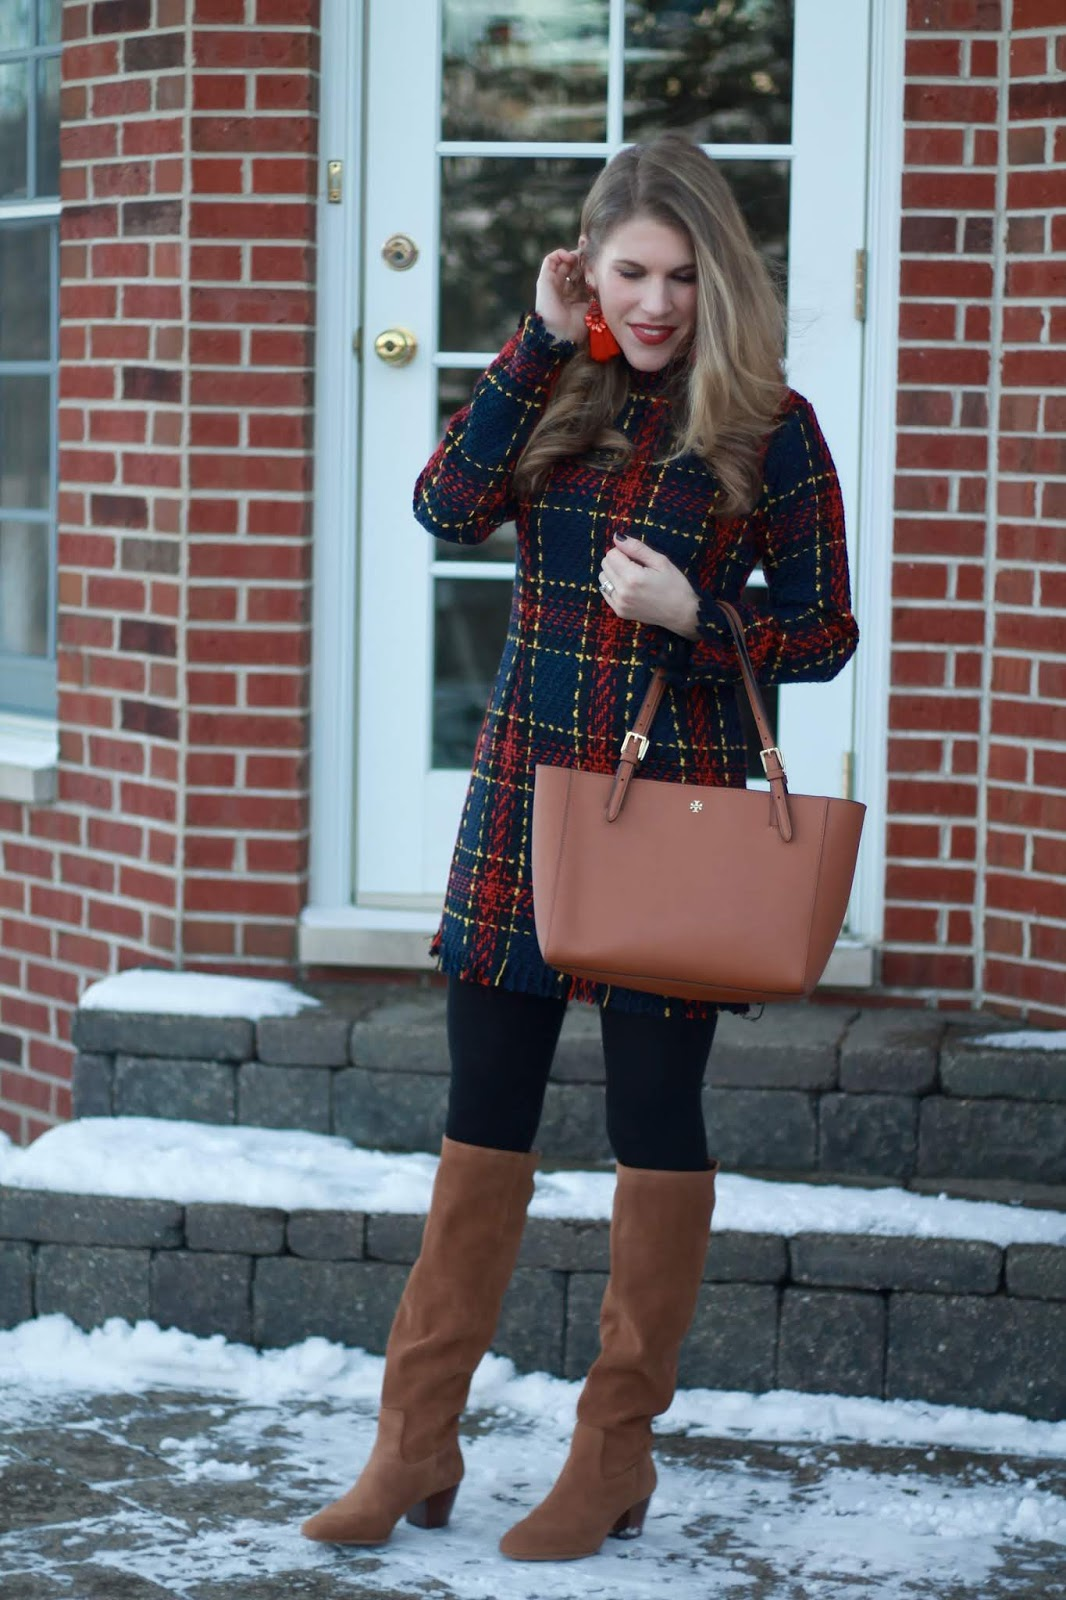 plaid tweed dress, cognac slouch boots, tory burch cognac tote, dressy winter outfit